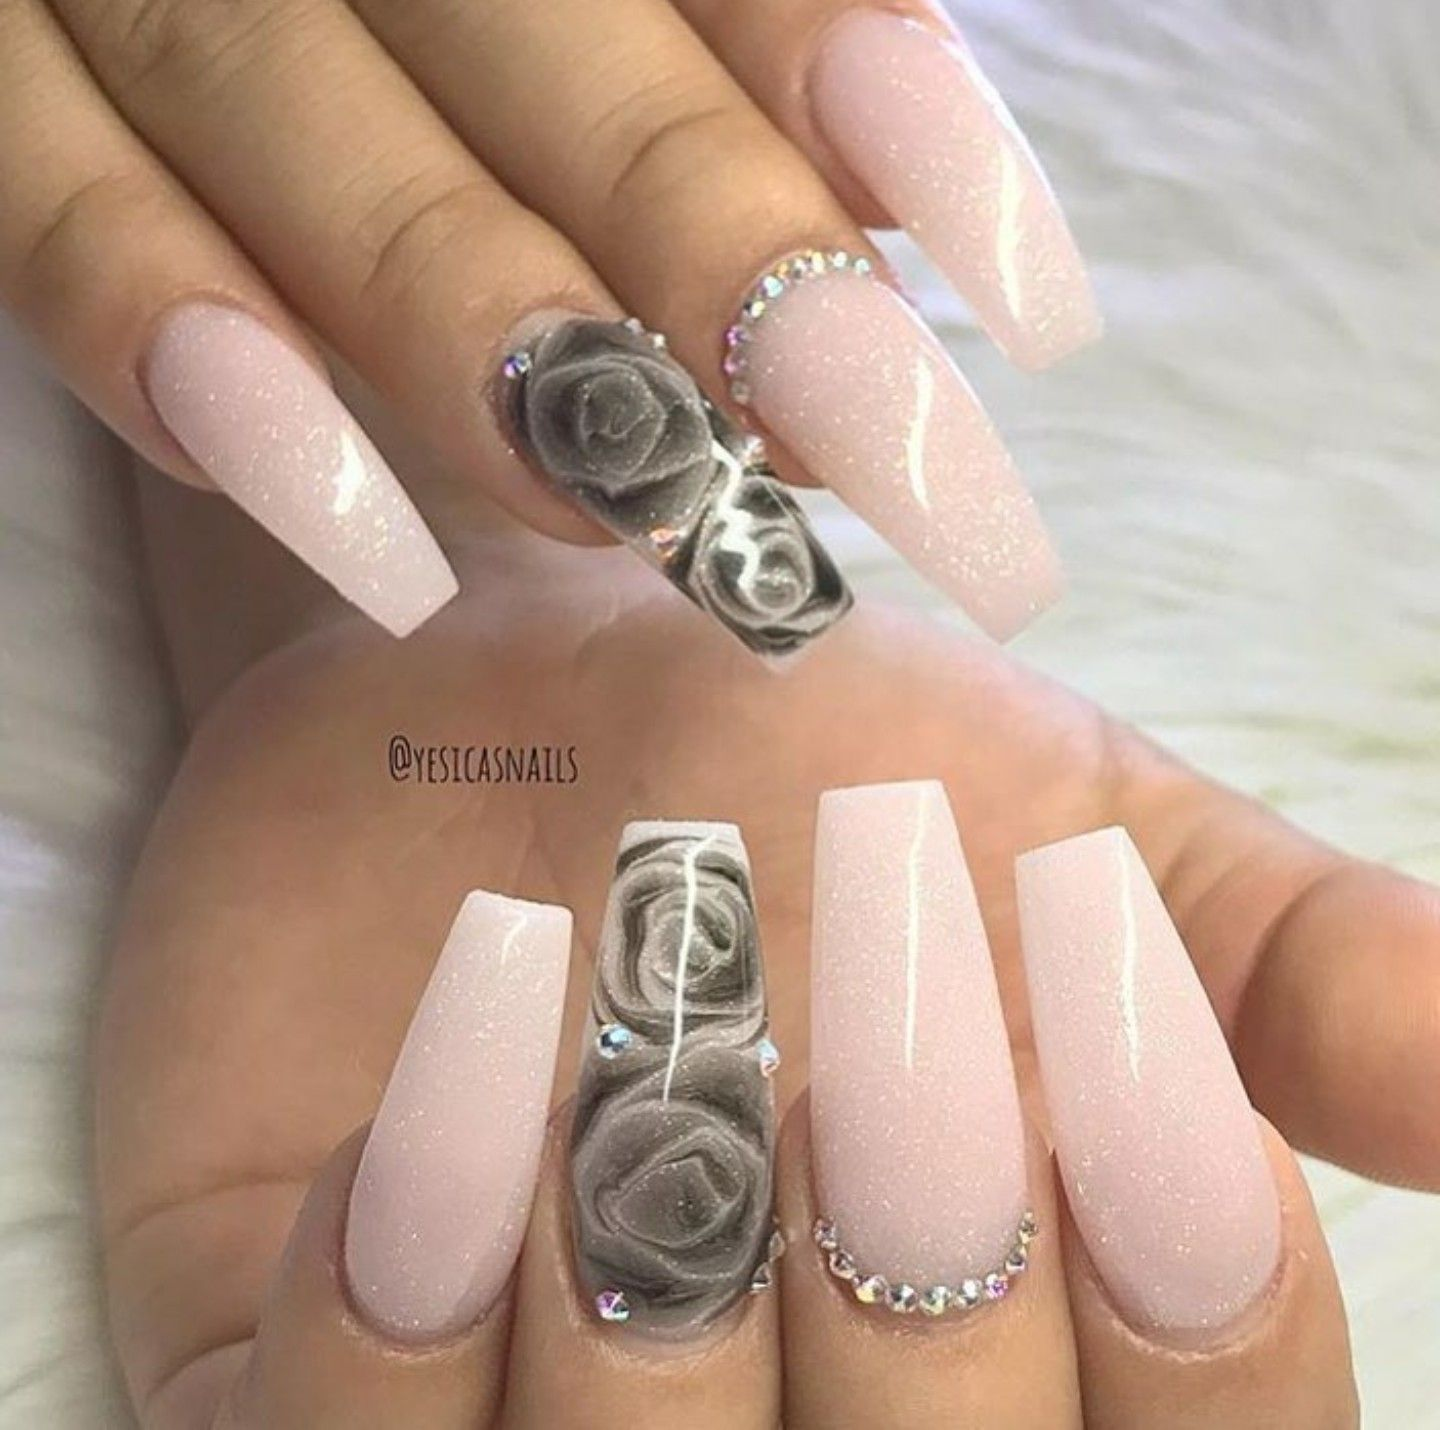 I Just Love These Nails Coffin Nails With Black Rose Nail Art On